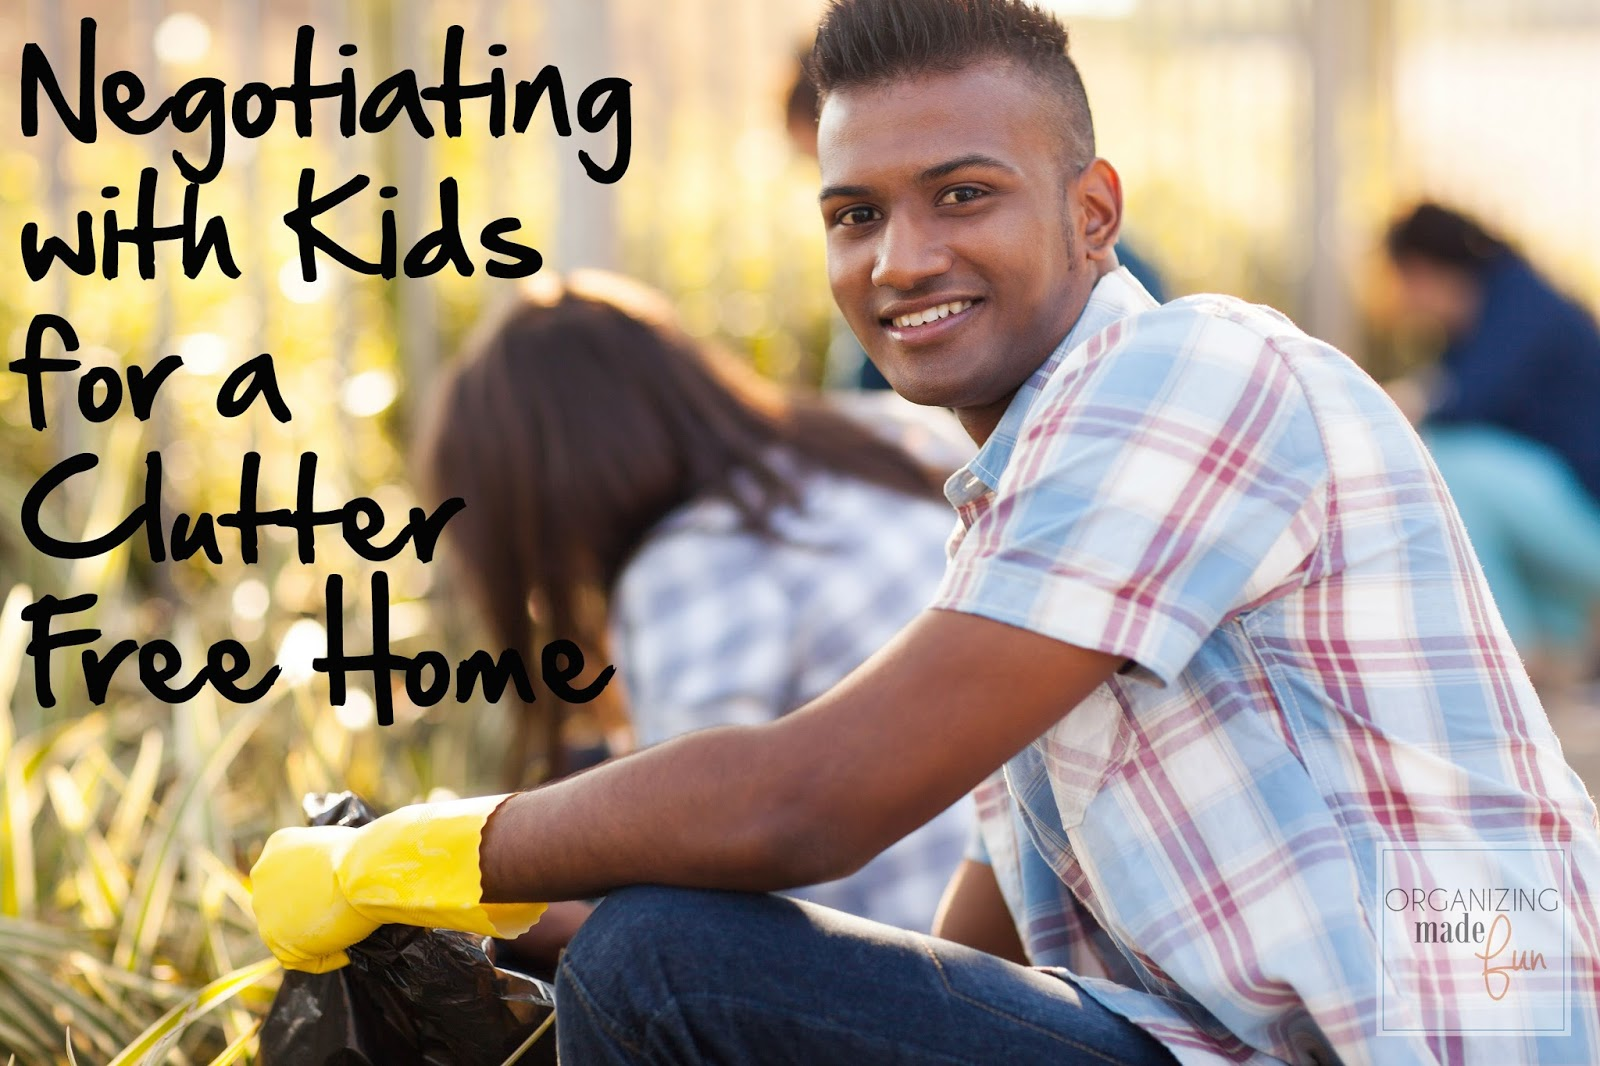 negotiating with kids for a clutter free home organizing made